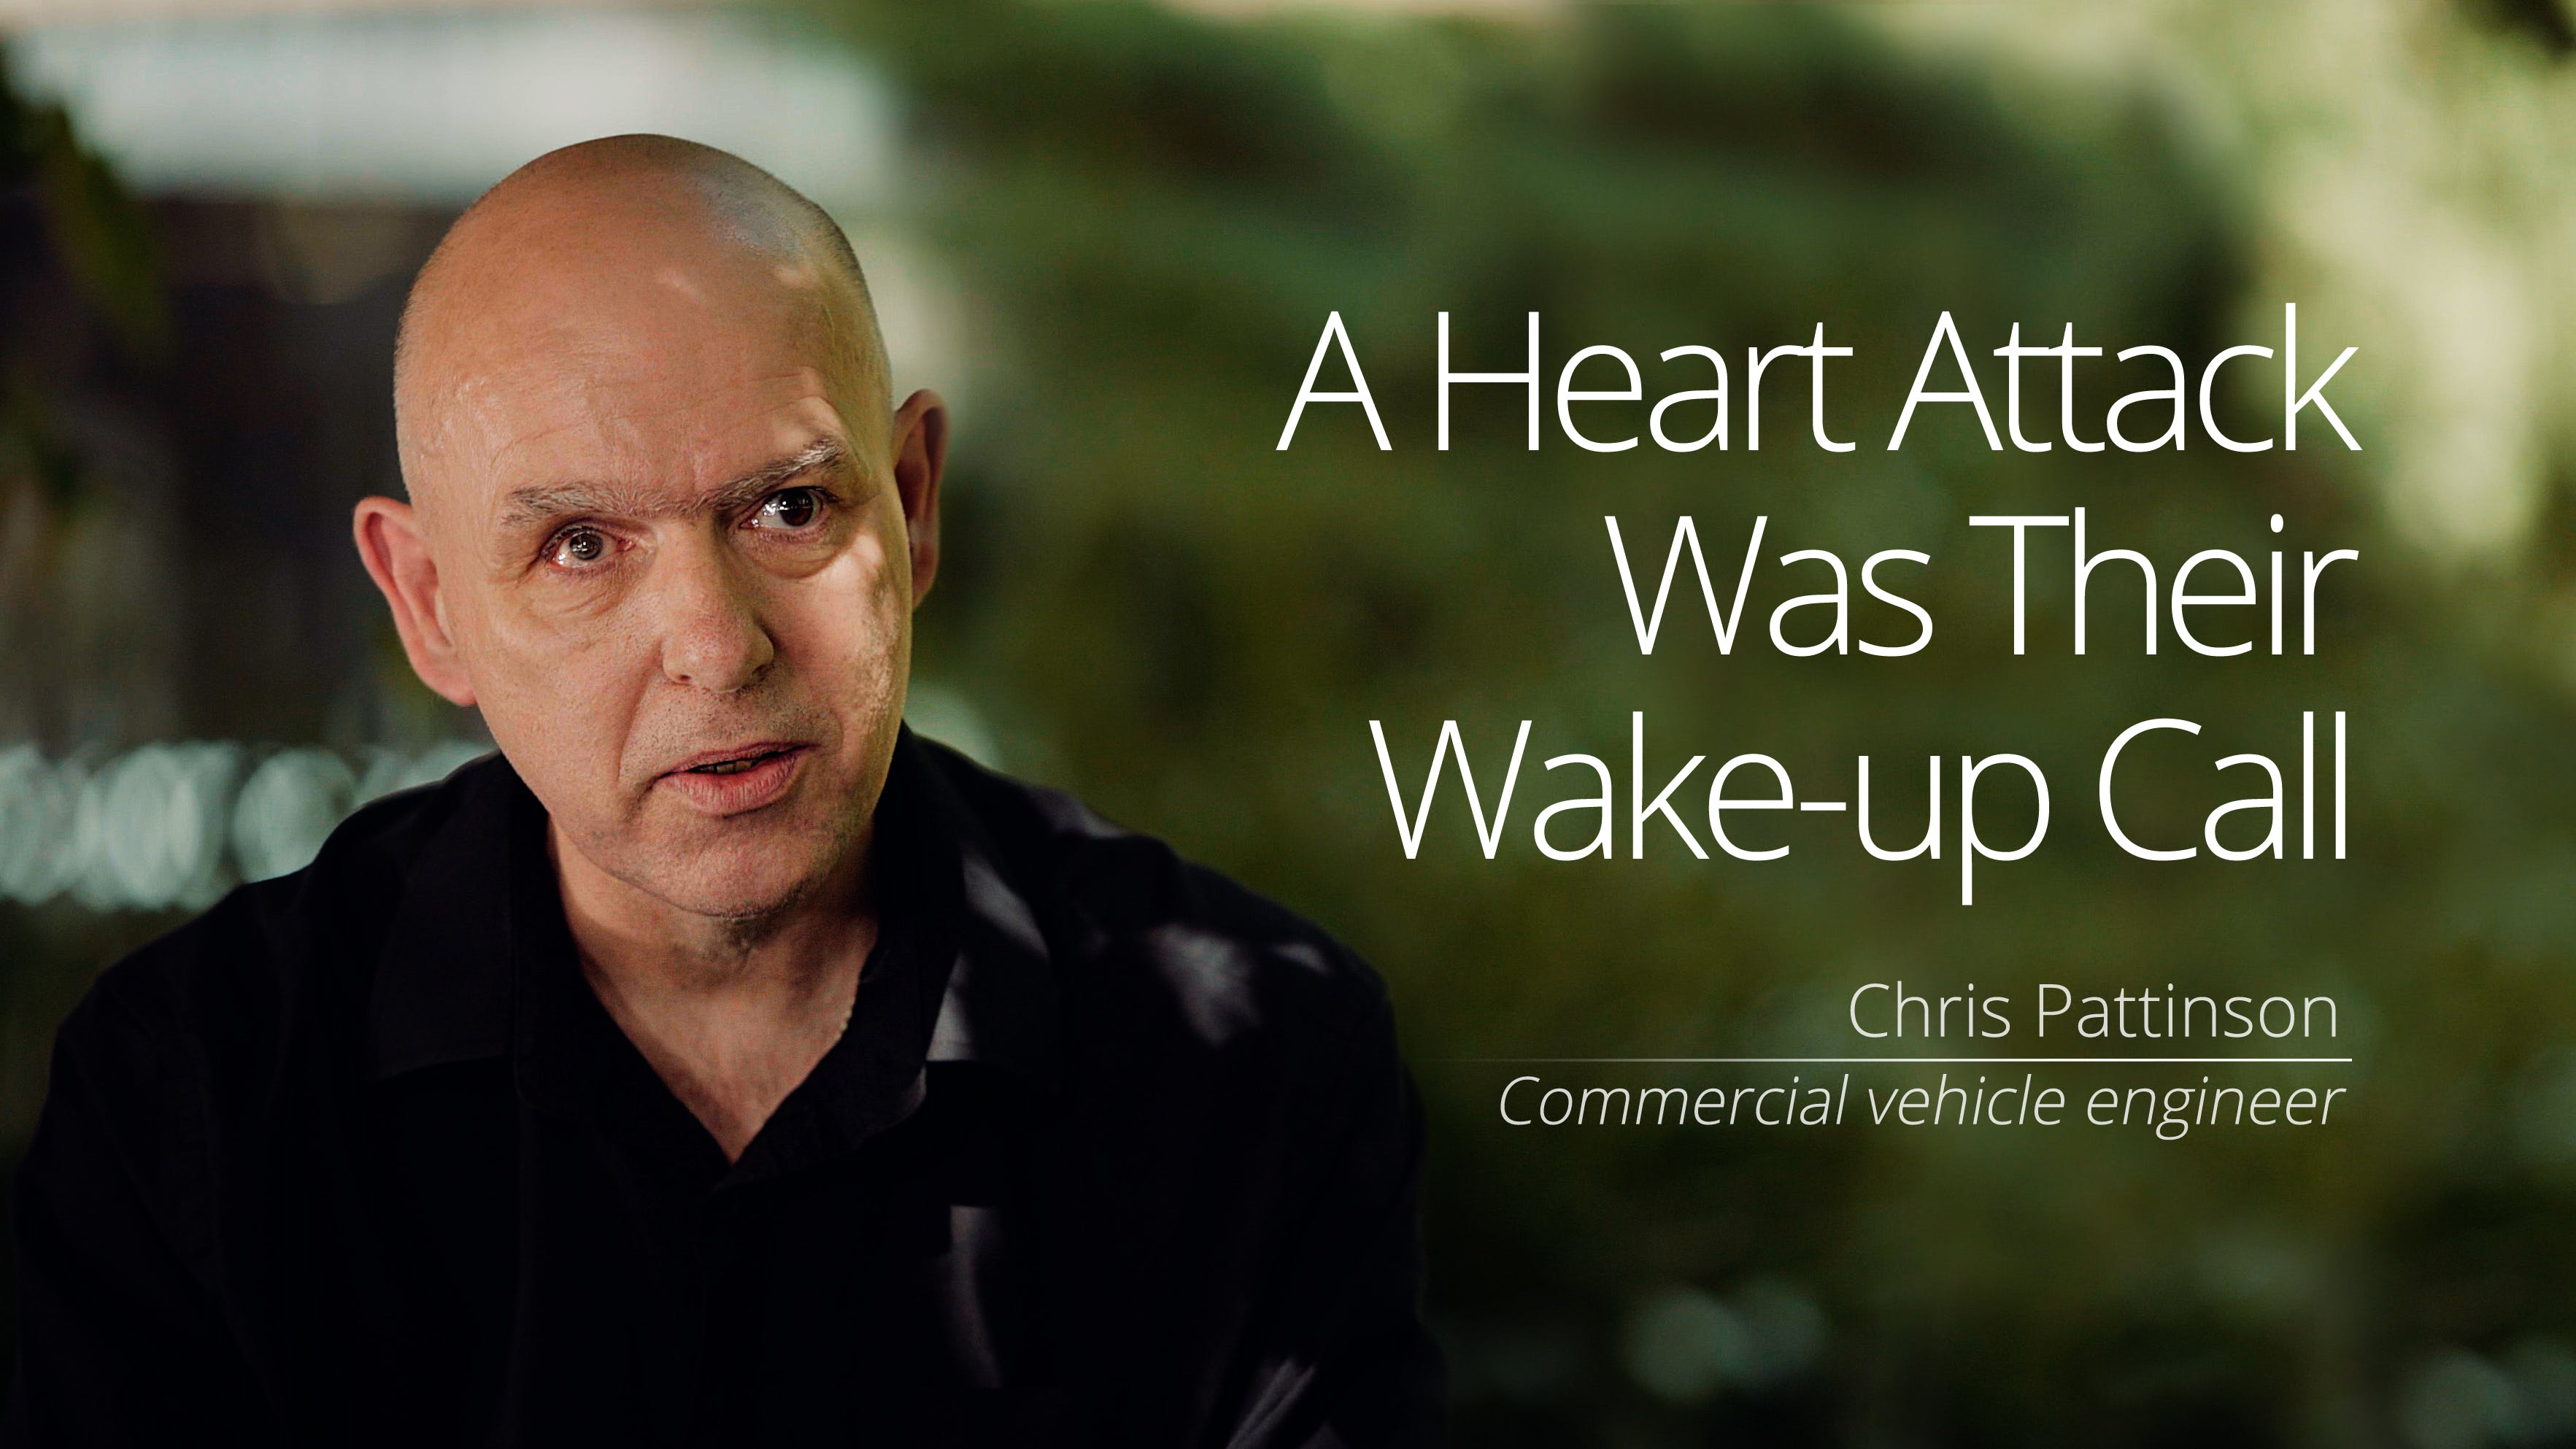 A Heart Attack Became Their Wake-Up Call